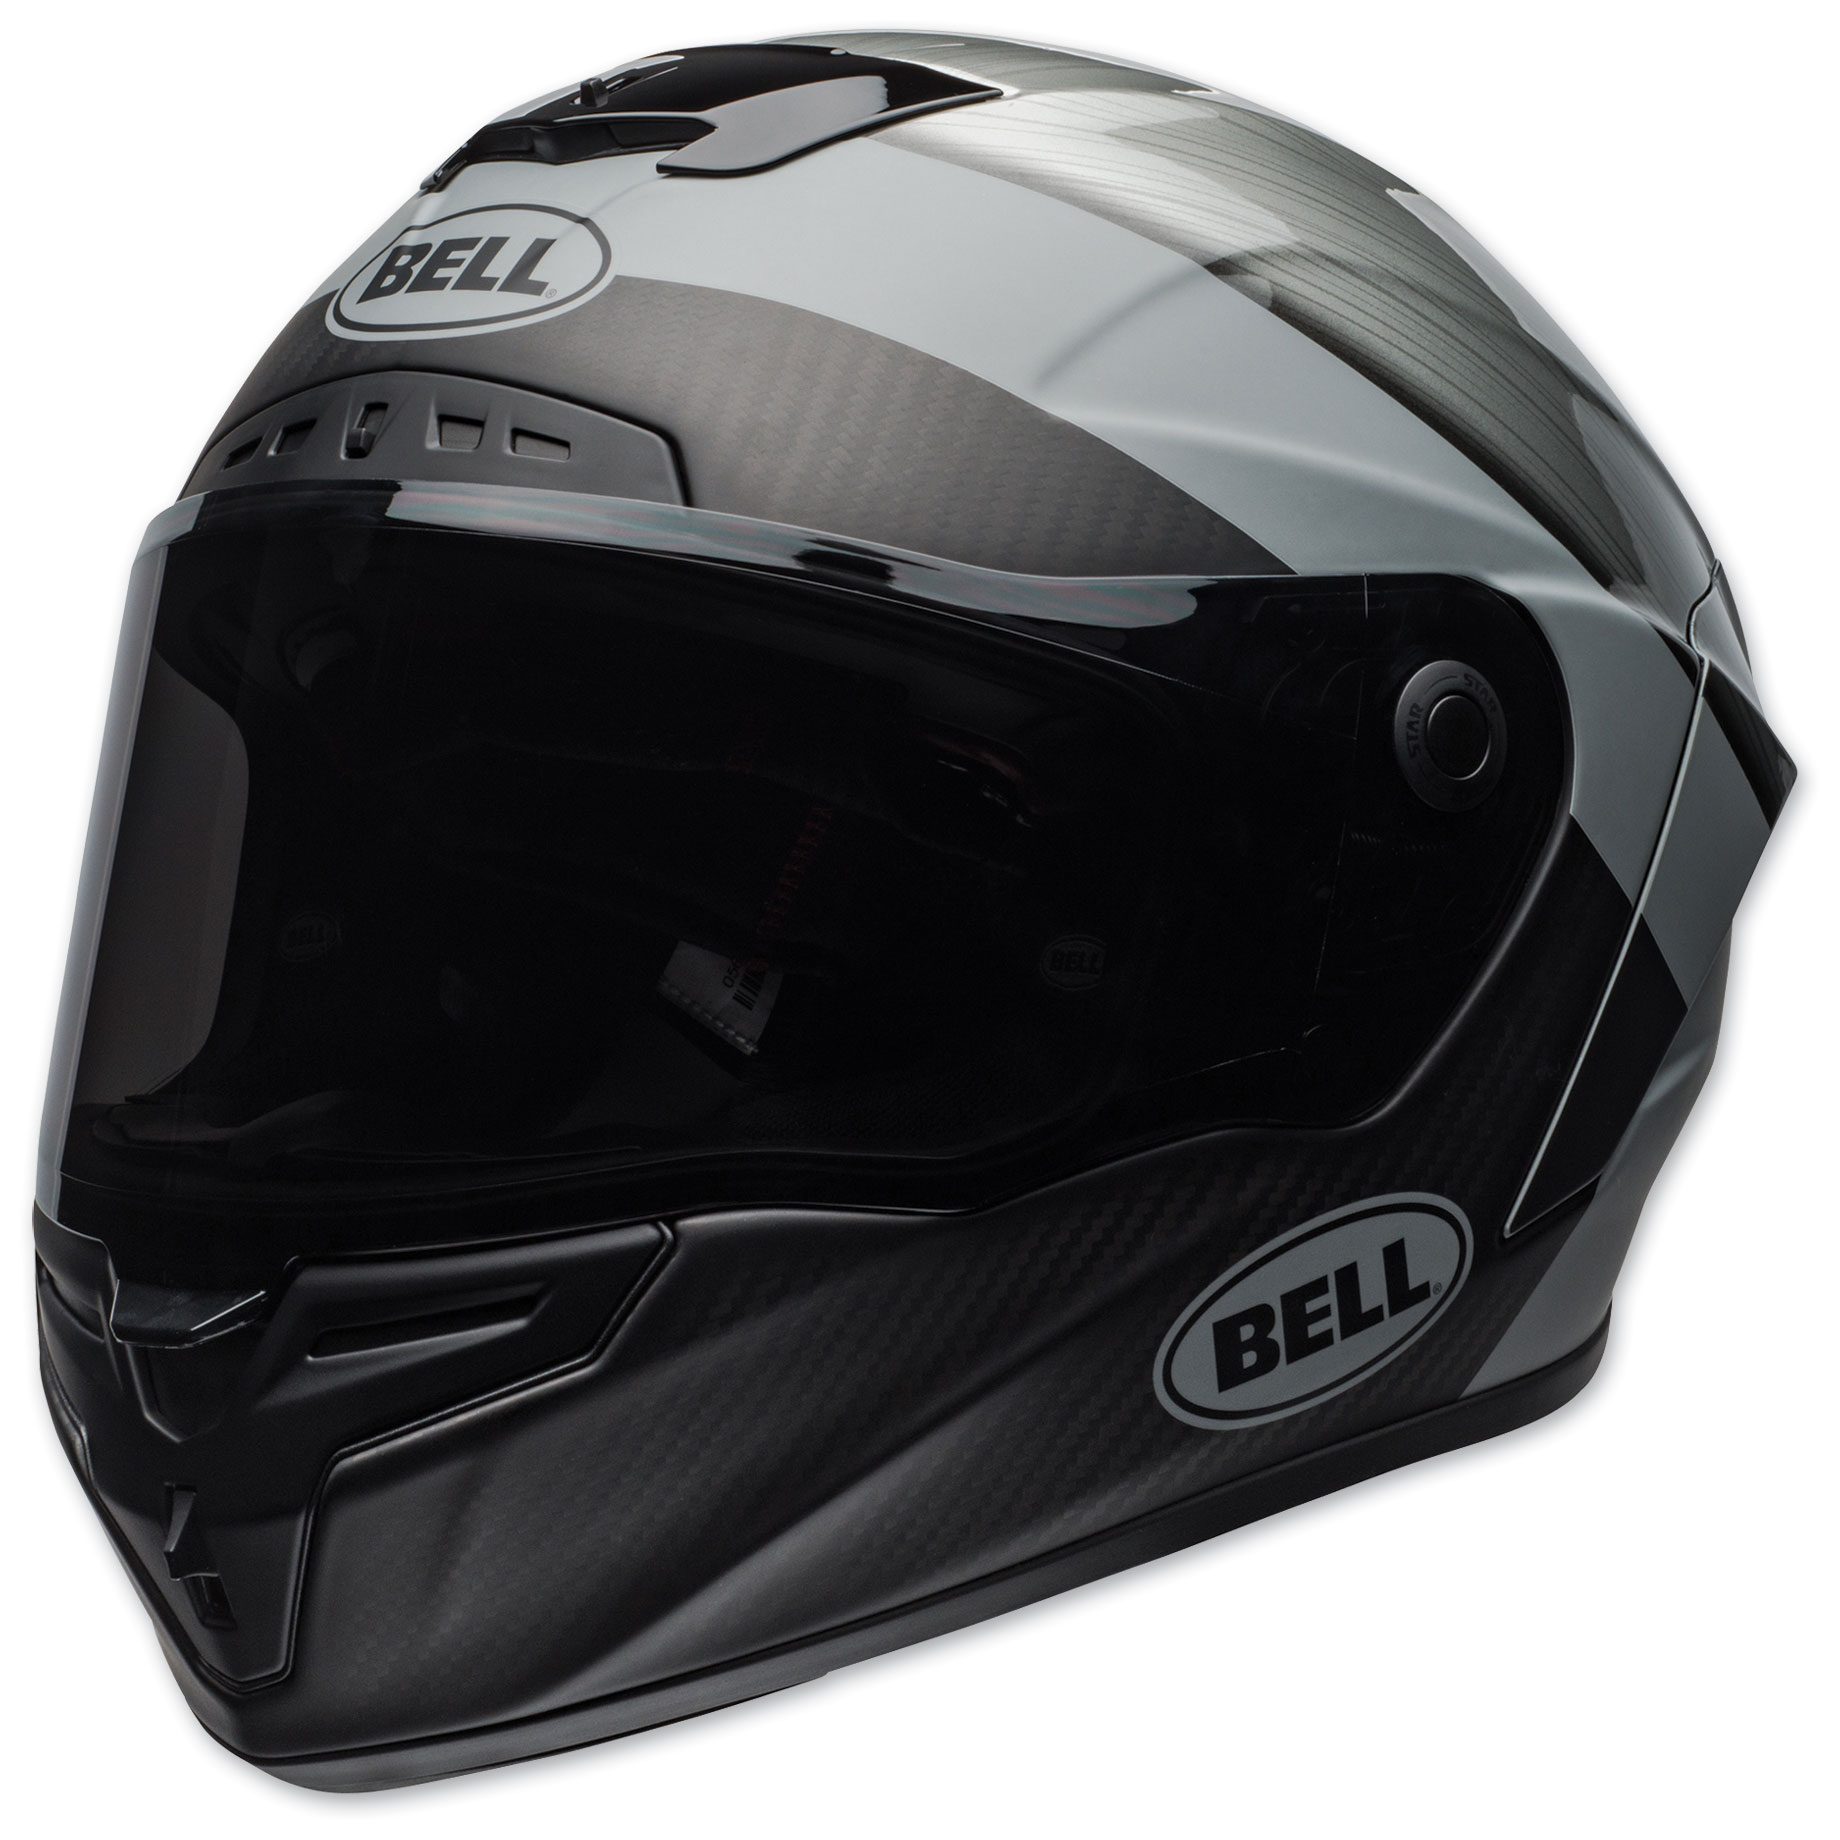 Bell Full Face Helmet >> Bell Race Star Flex Dlx Surge Metal Gray Full Face Helmet 7114491